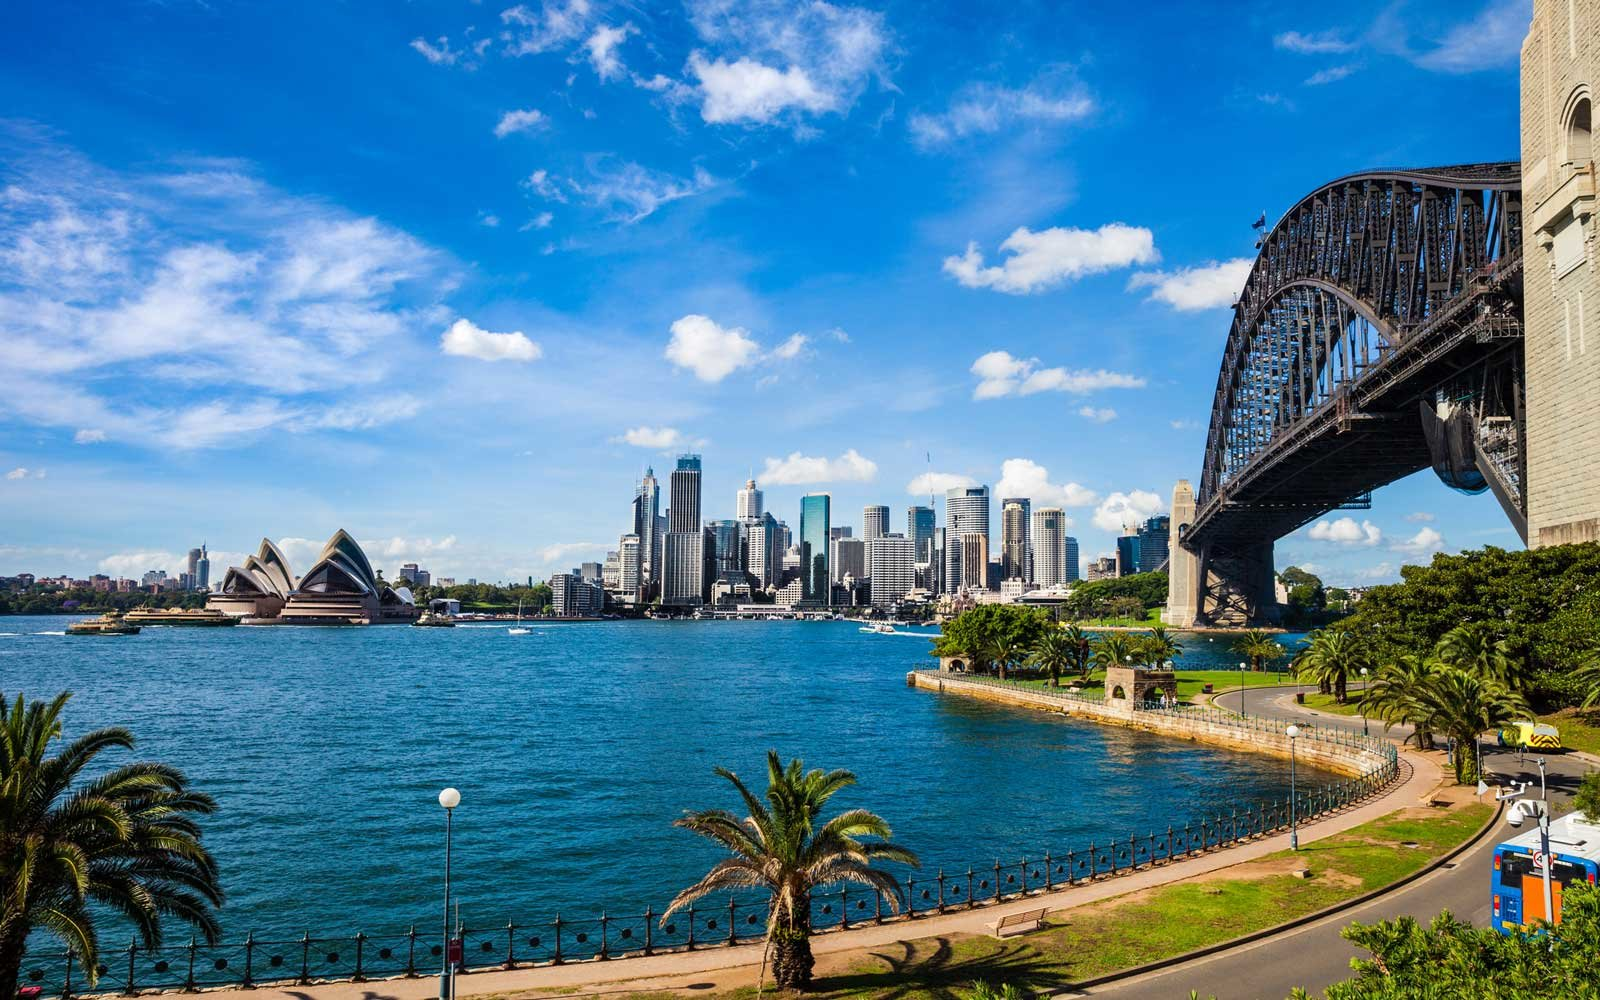 Australia vs. New Zealand: What Is the Best Place to Live?